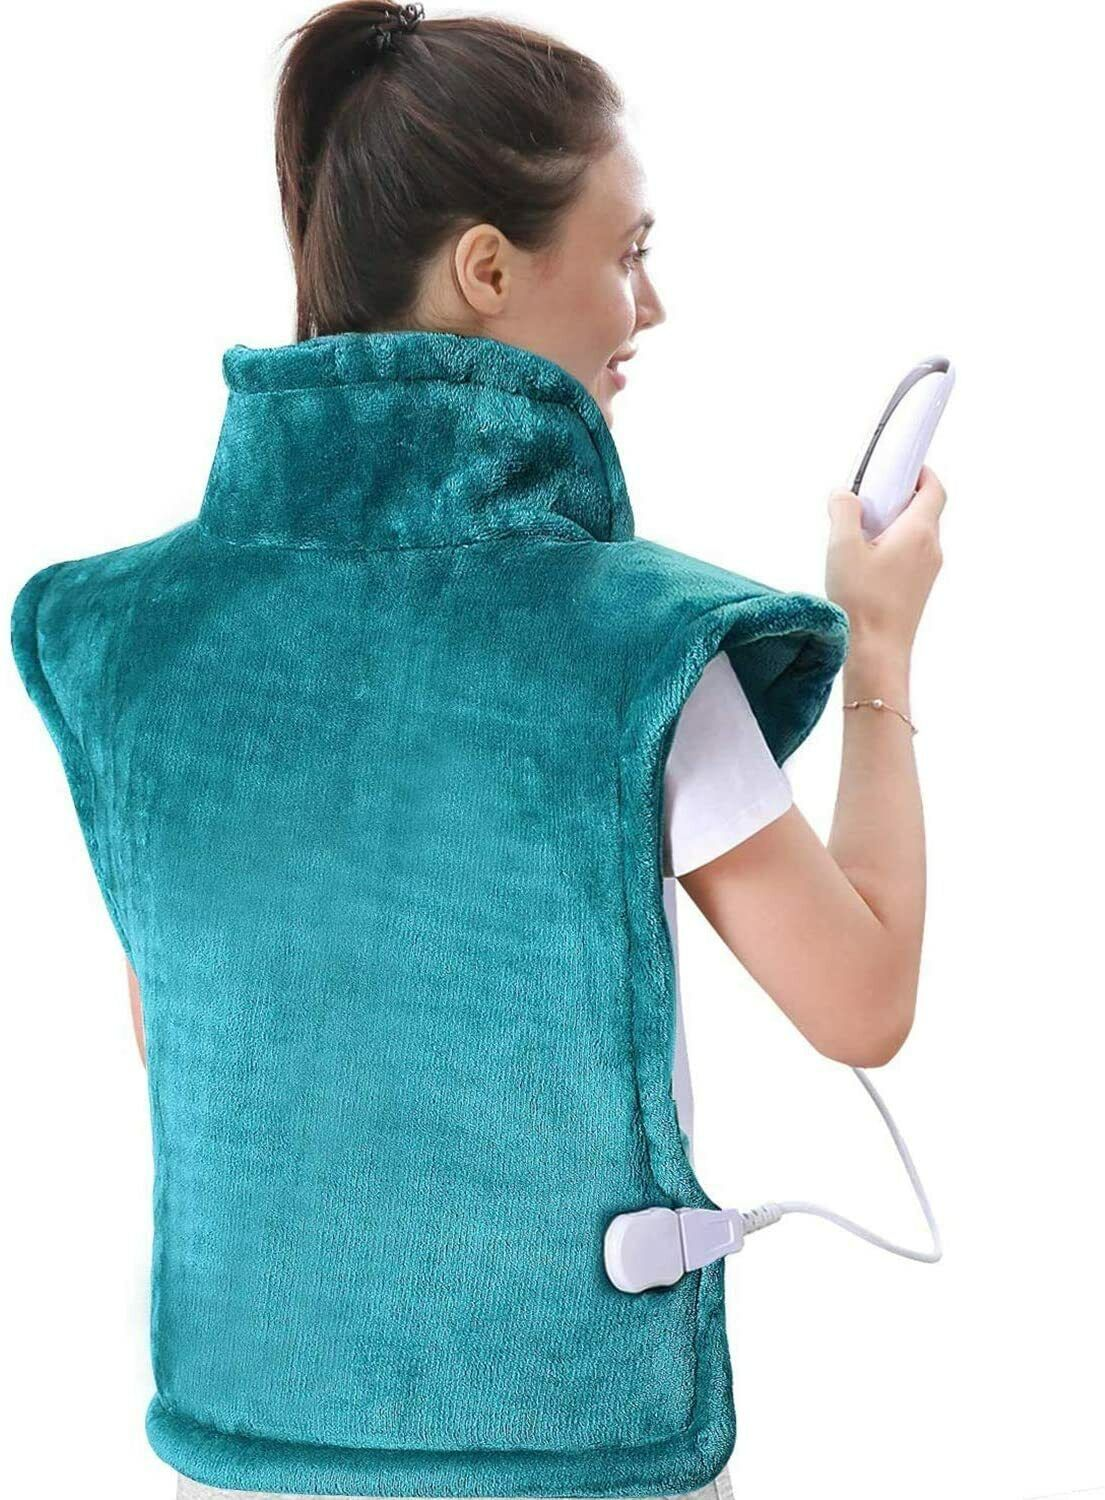 Therapeutic Heat & Vibration Massage for Back and Shoulder with Fast-Heating Electric Heating Pads